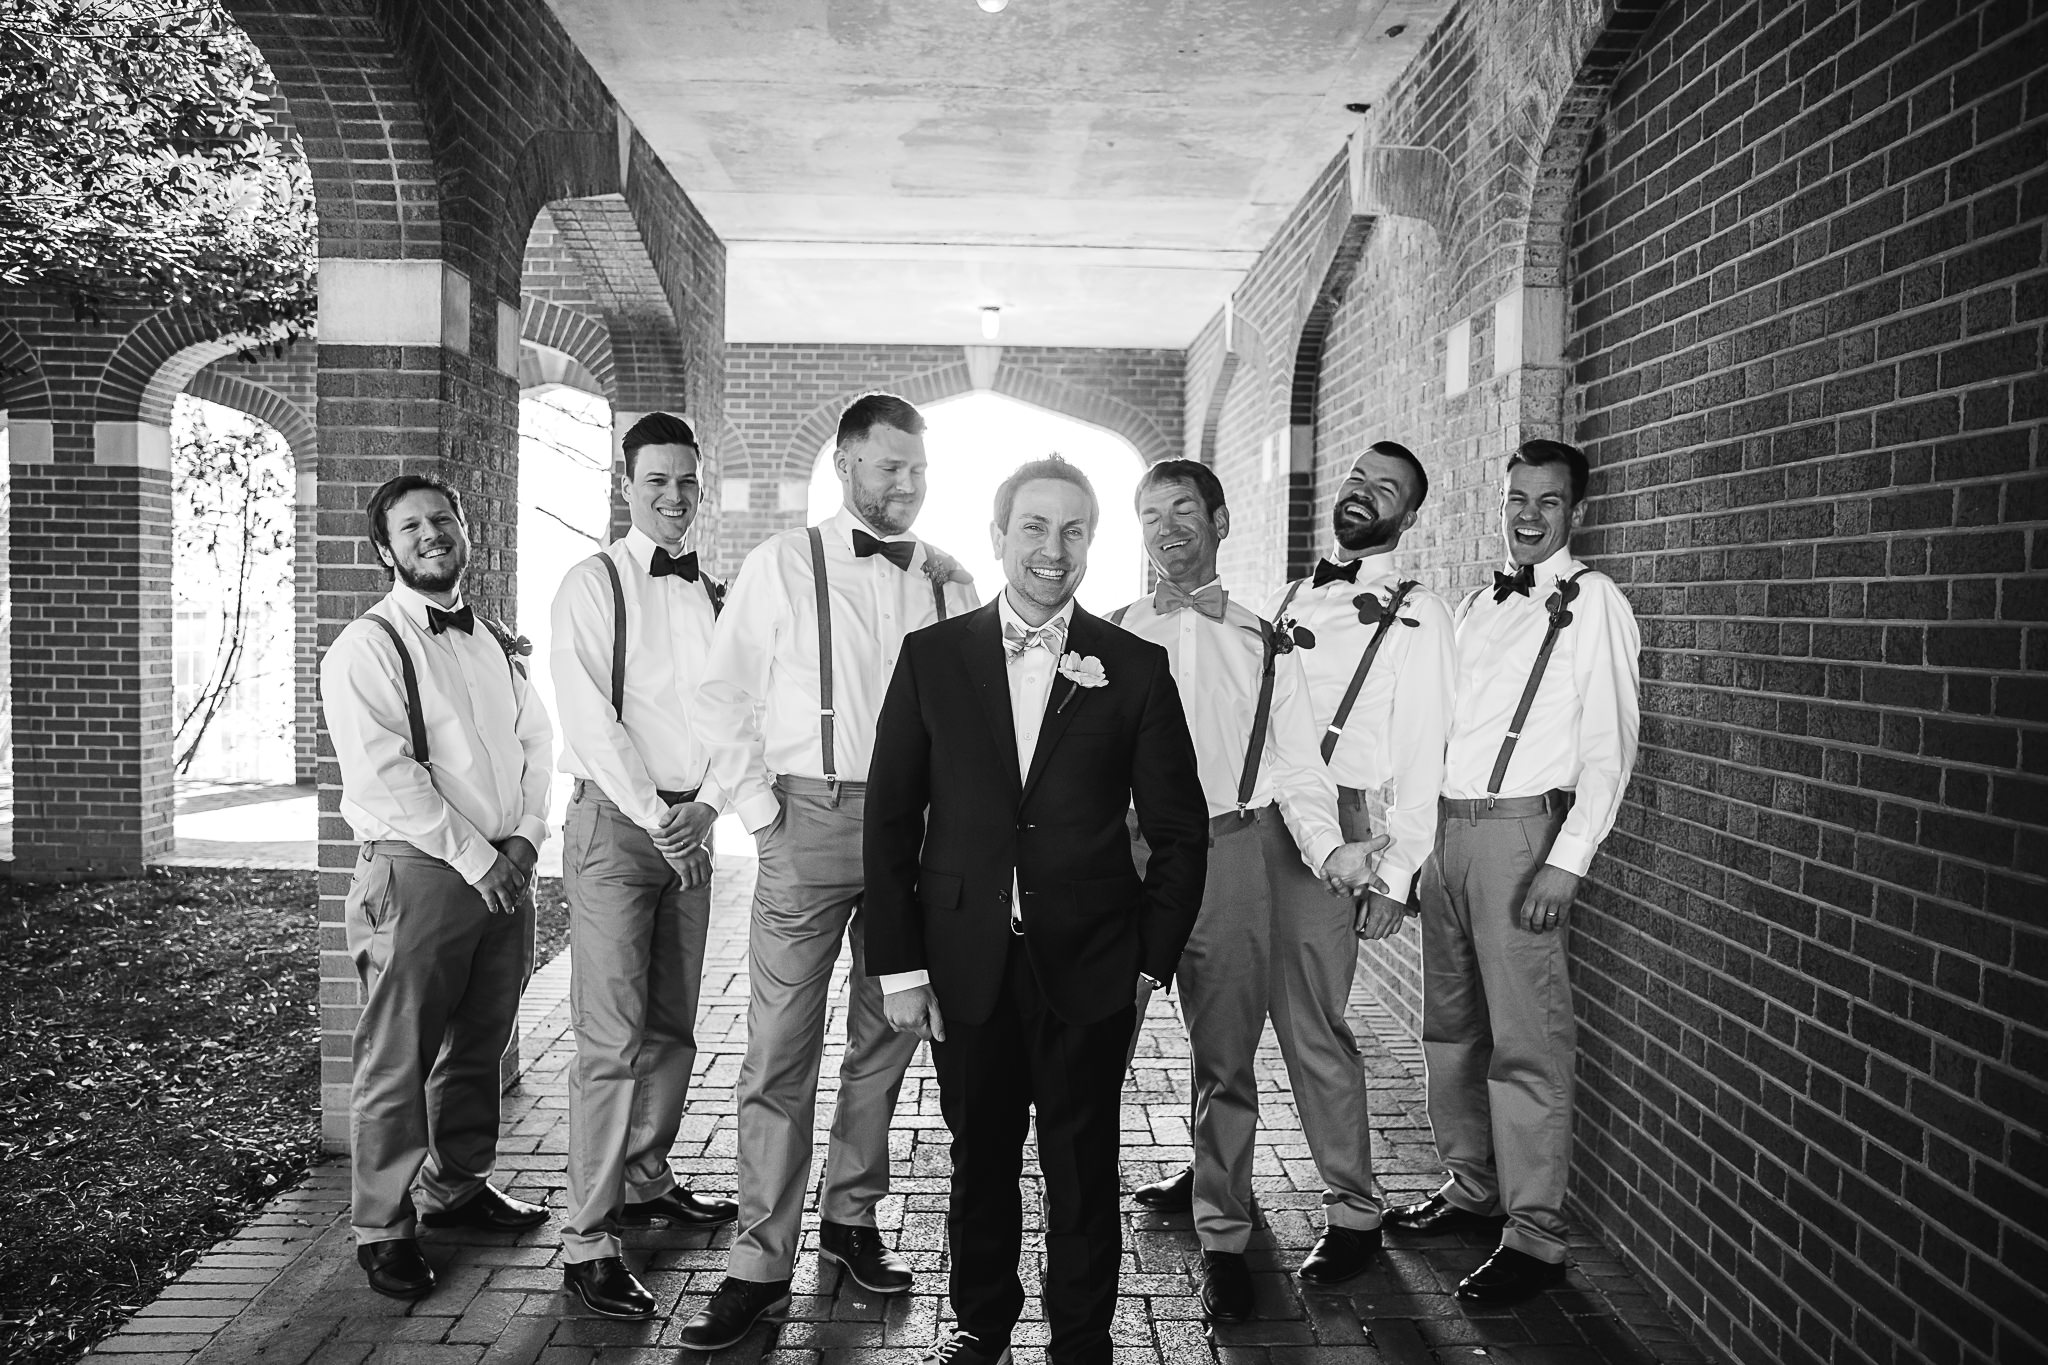 chattanooga-wedding-photographers-thewarmtharoundyou-waterhouse-pavilion-patten-chapel-wedding-sam-dusty (17 of 99).jpg